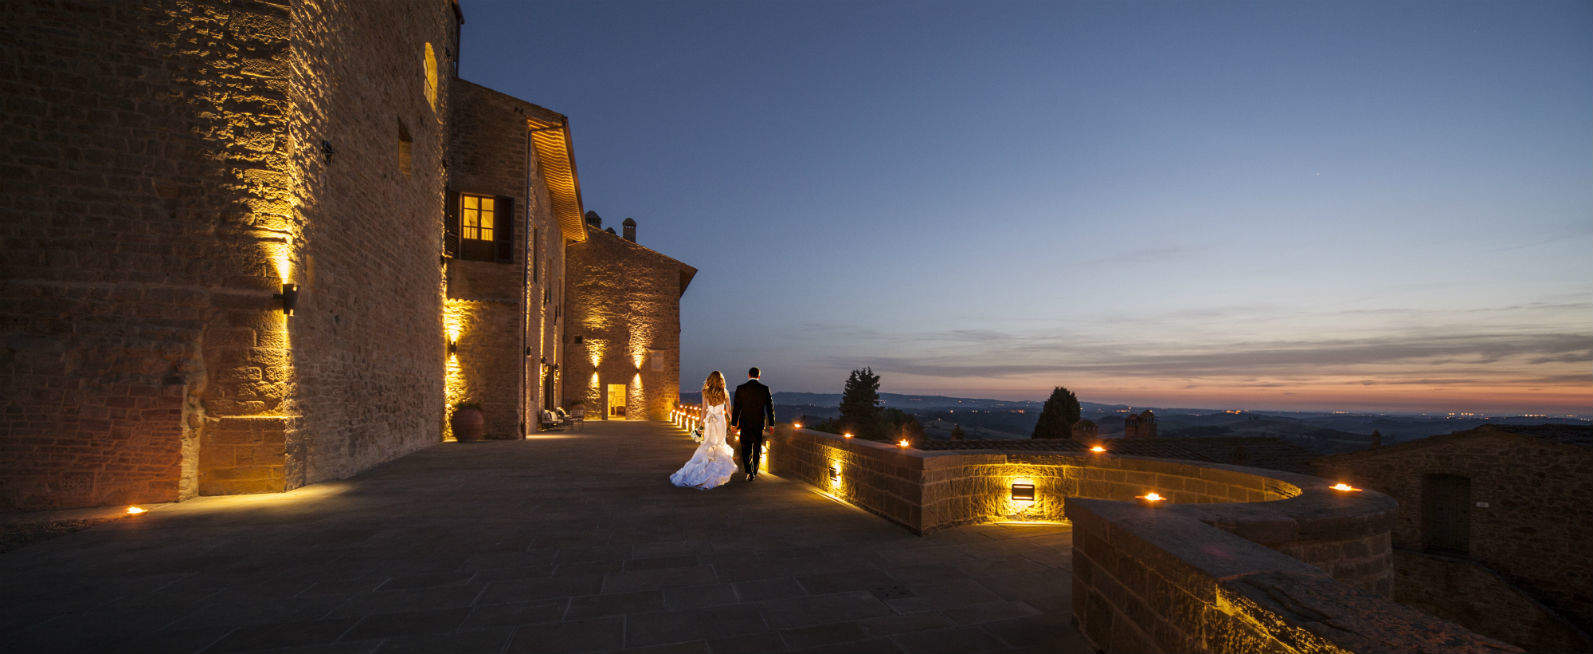 Location Matrimonio Bohemien : Toscana resort castelfalfi la location perfetta per un